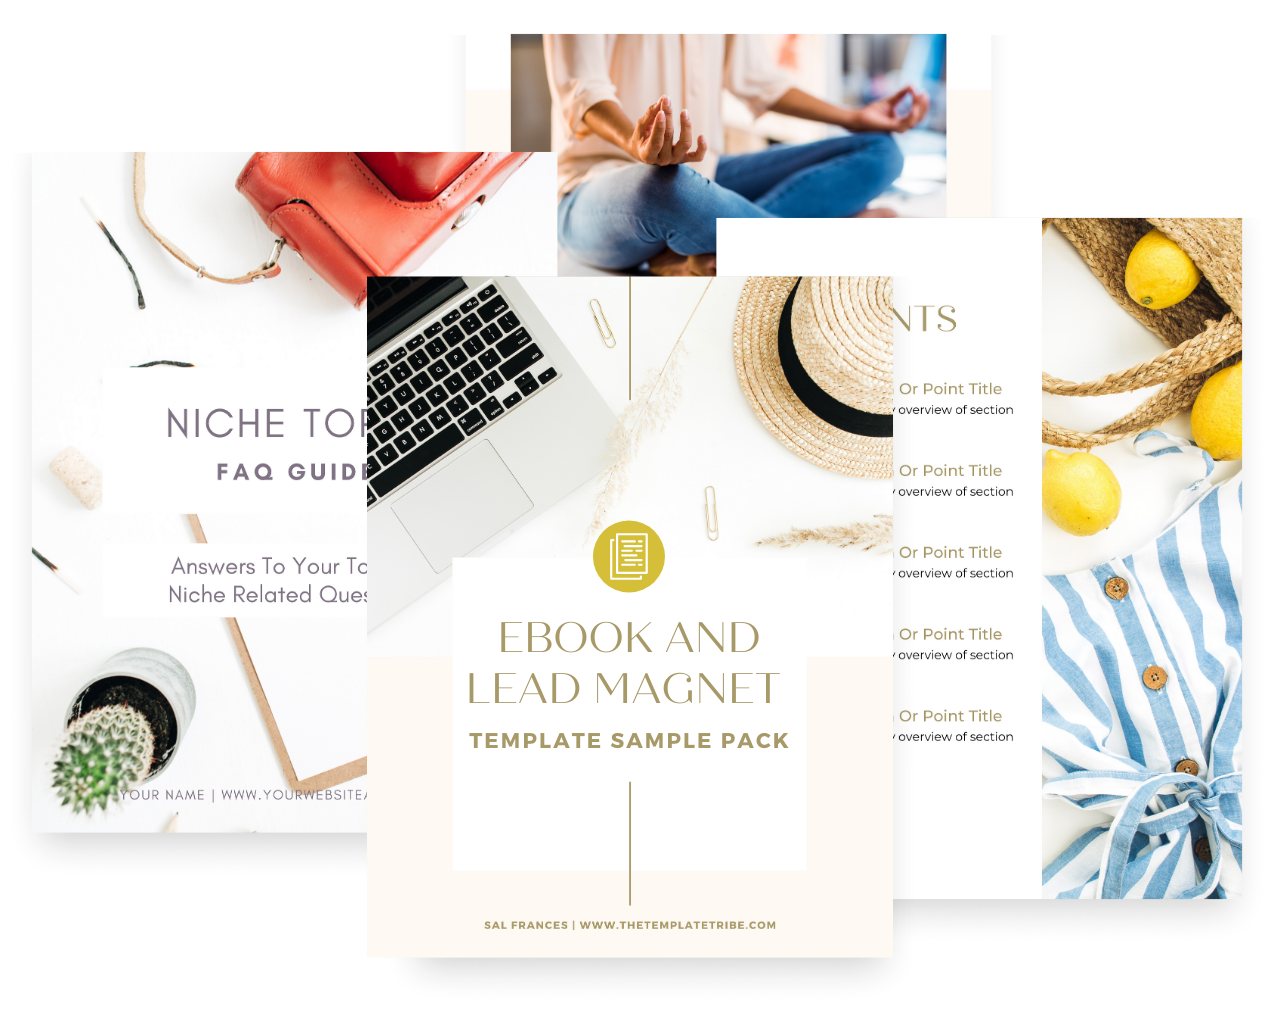 Free eBook & Lead Magnet Canva Template Pack